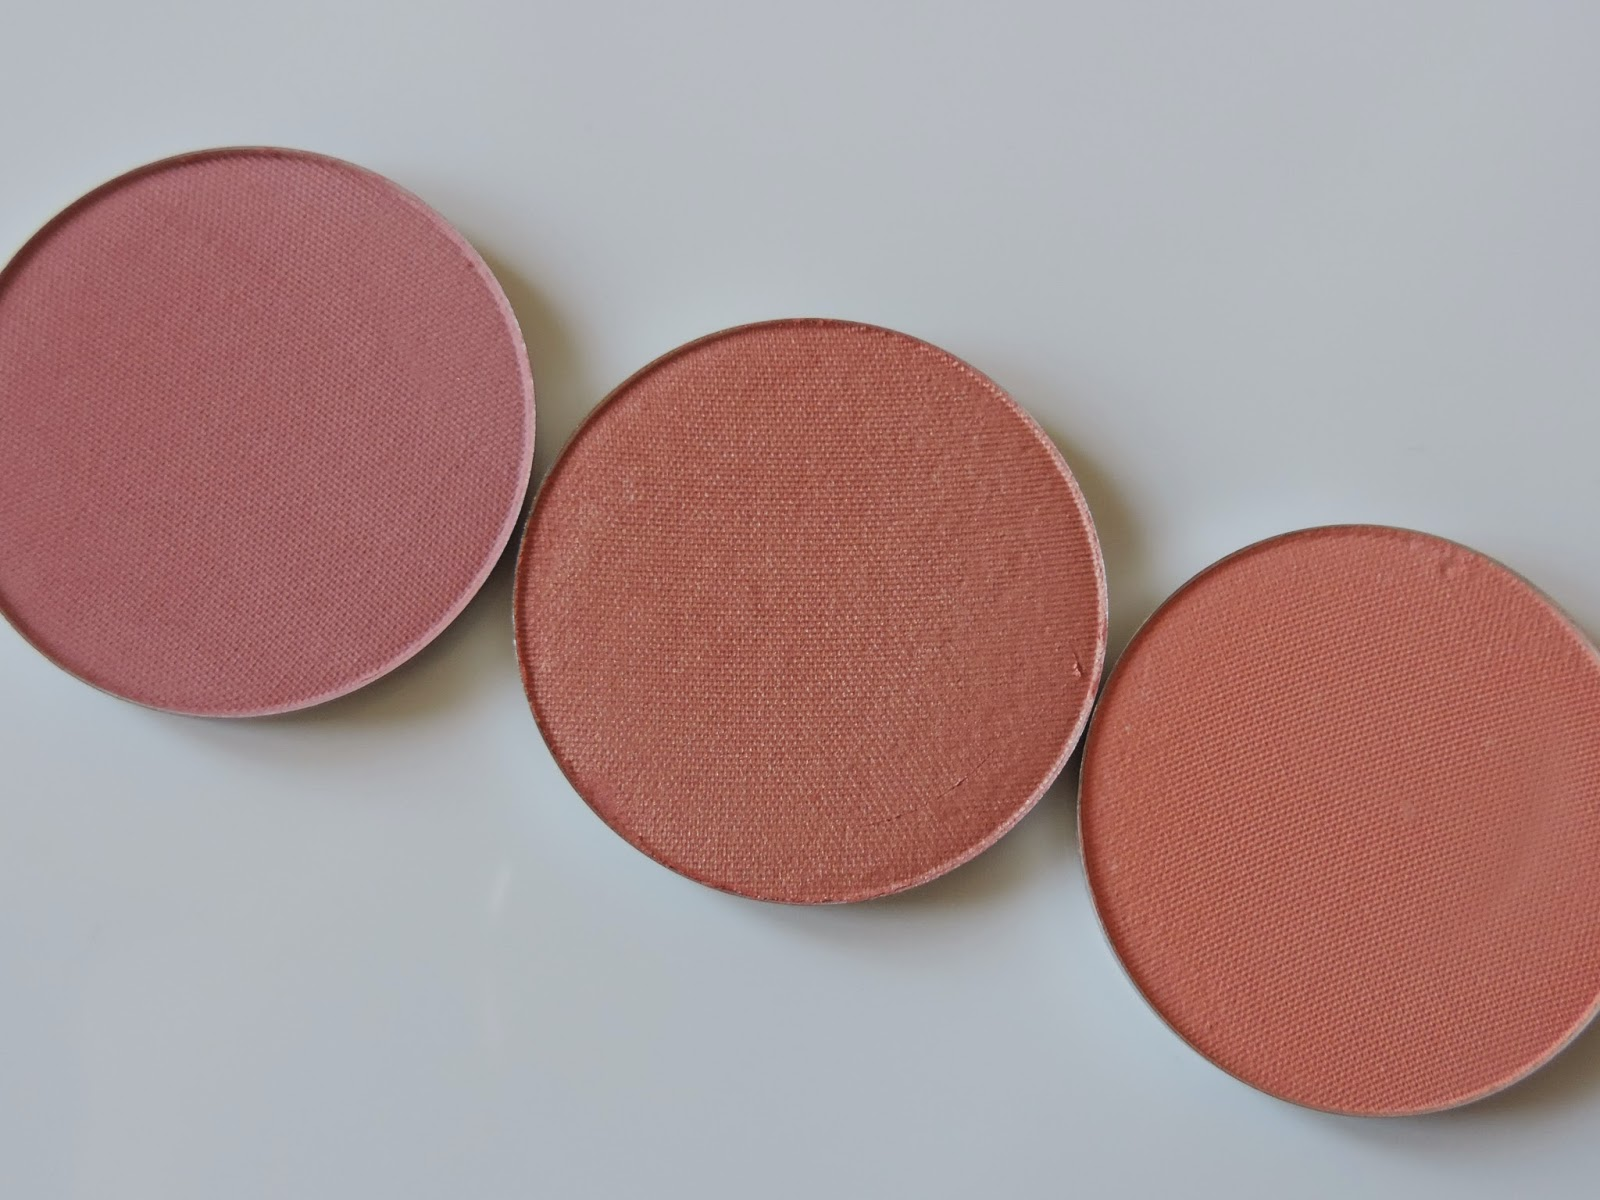 Makeup Geek blush (from left) Spell Bound, Romance, Bliss